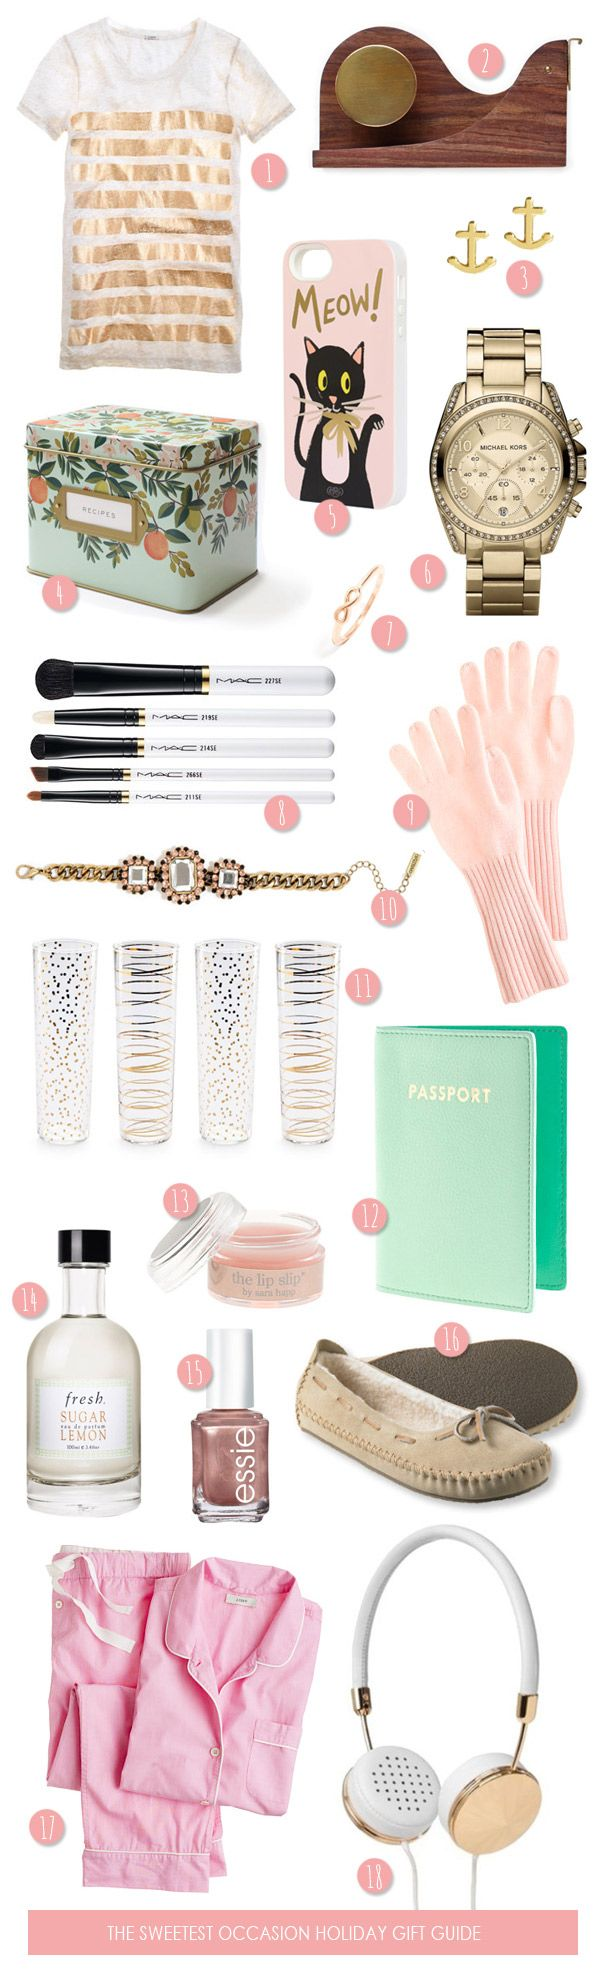 The Gift Guide: Gifts for Her - The Sweetest Occasion — The Sweetest Occasion